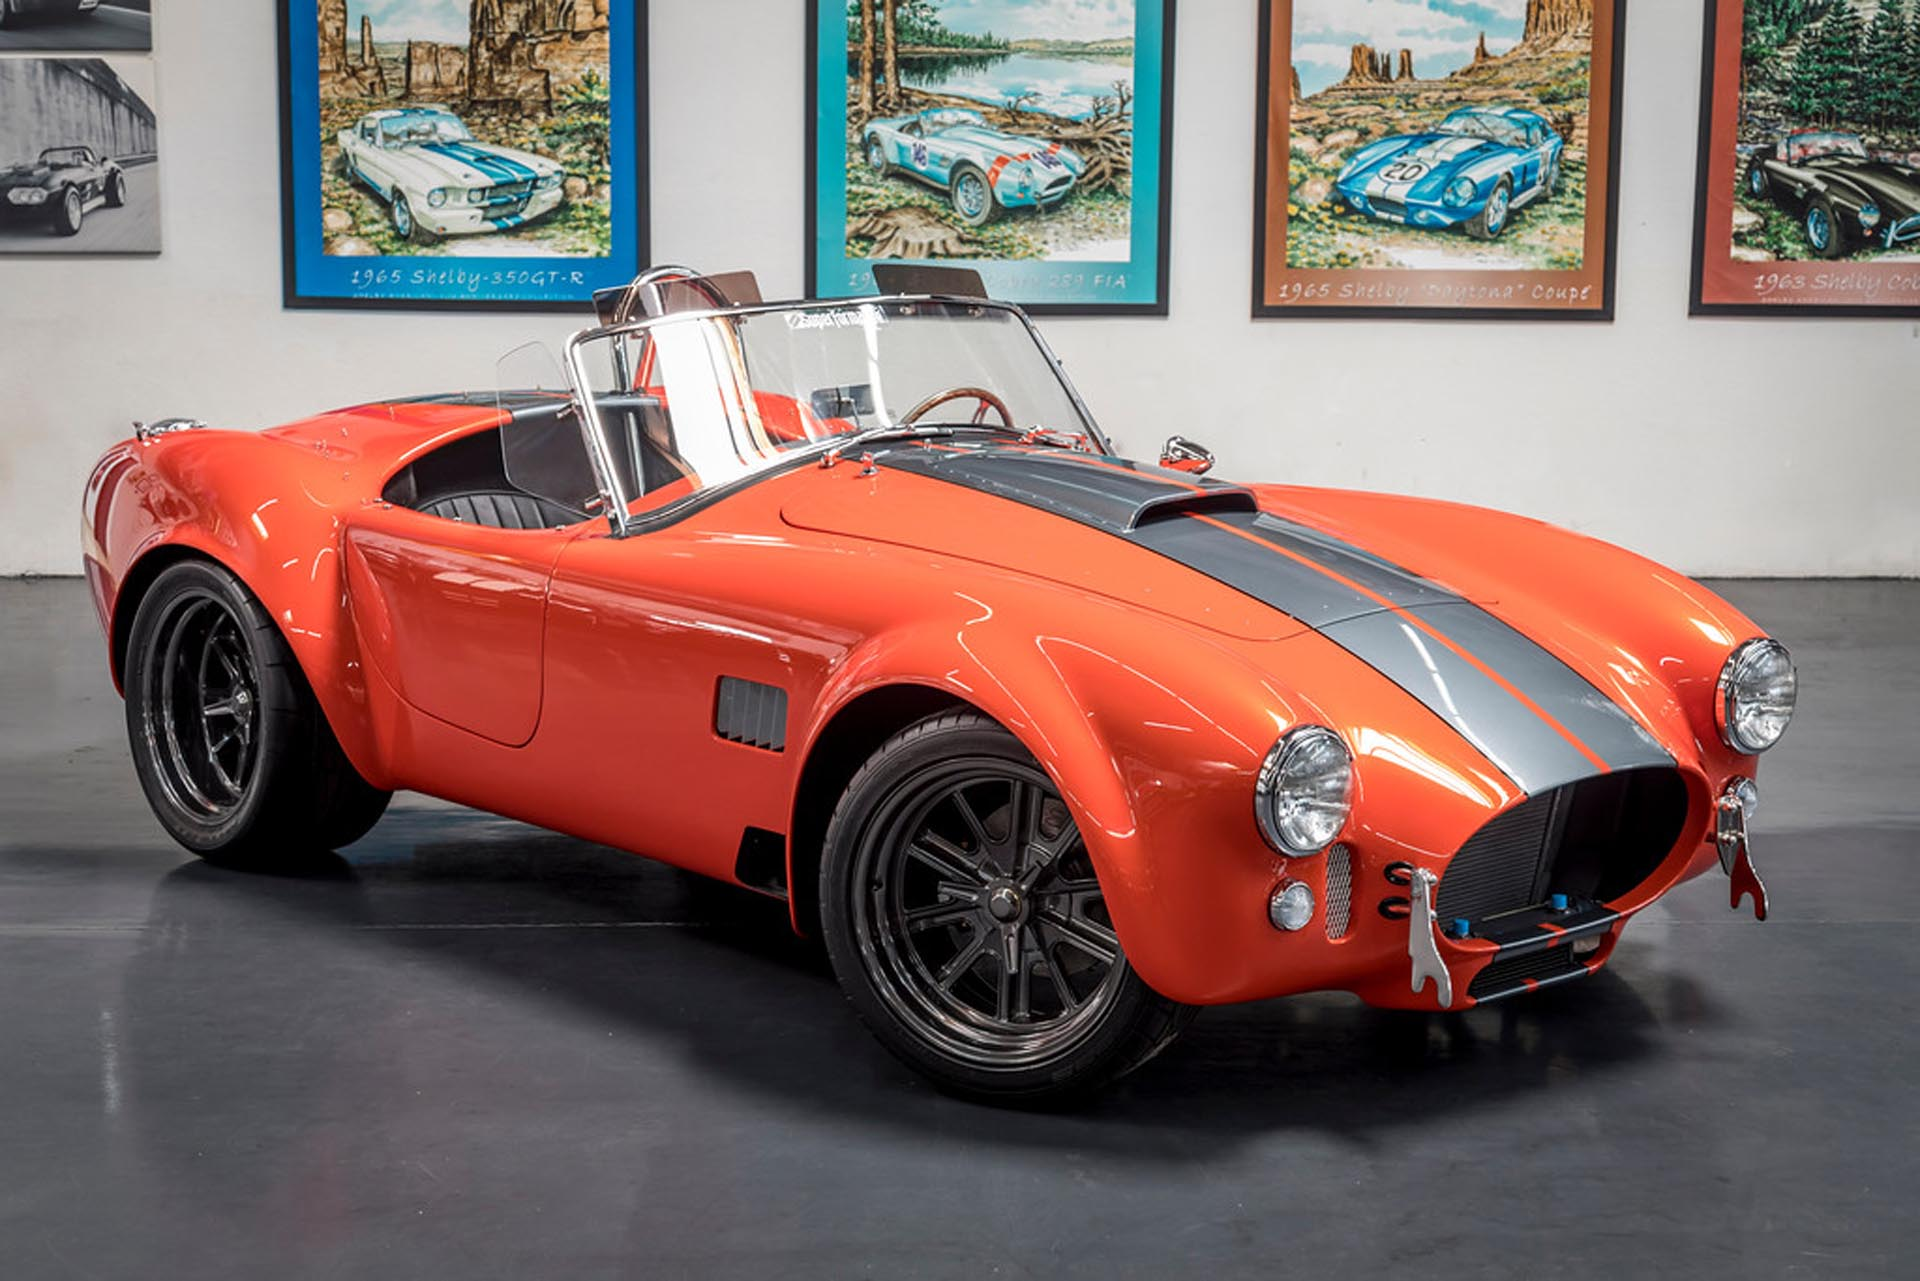 1965 Superformance MK III Convertible